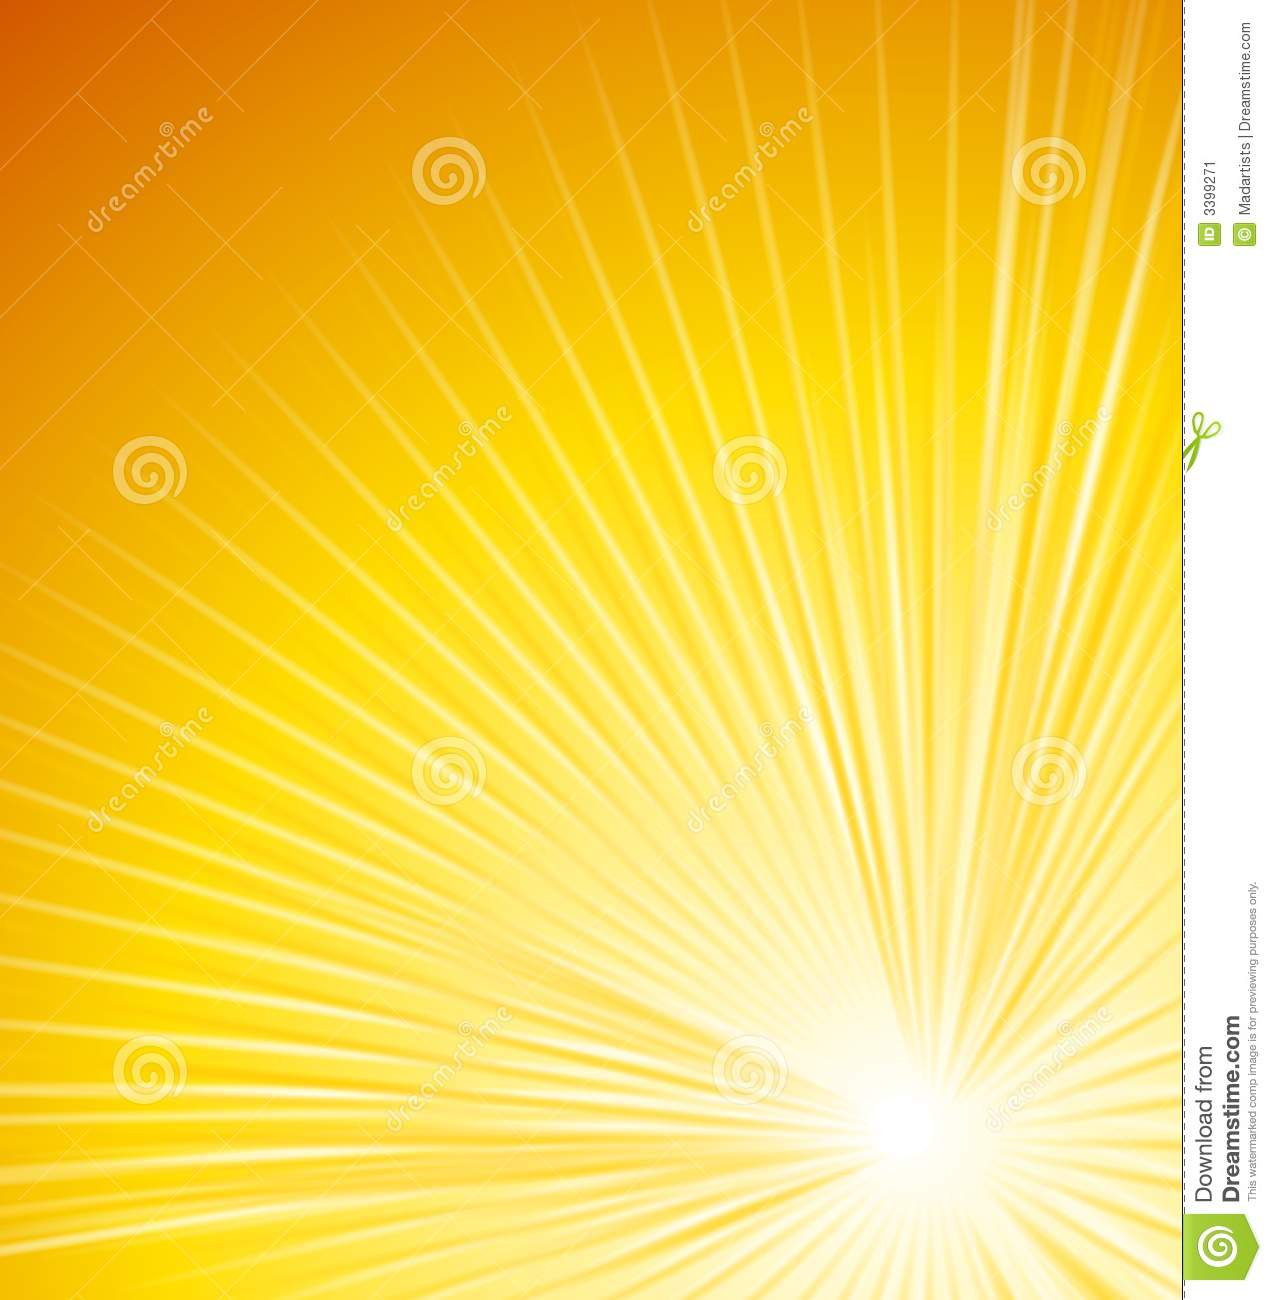 3d Animation Wallpaper Download Rays Of Light Glowing Lines 2 Stock Image Image 3399271